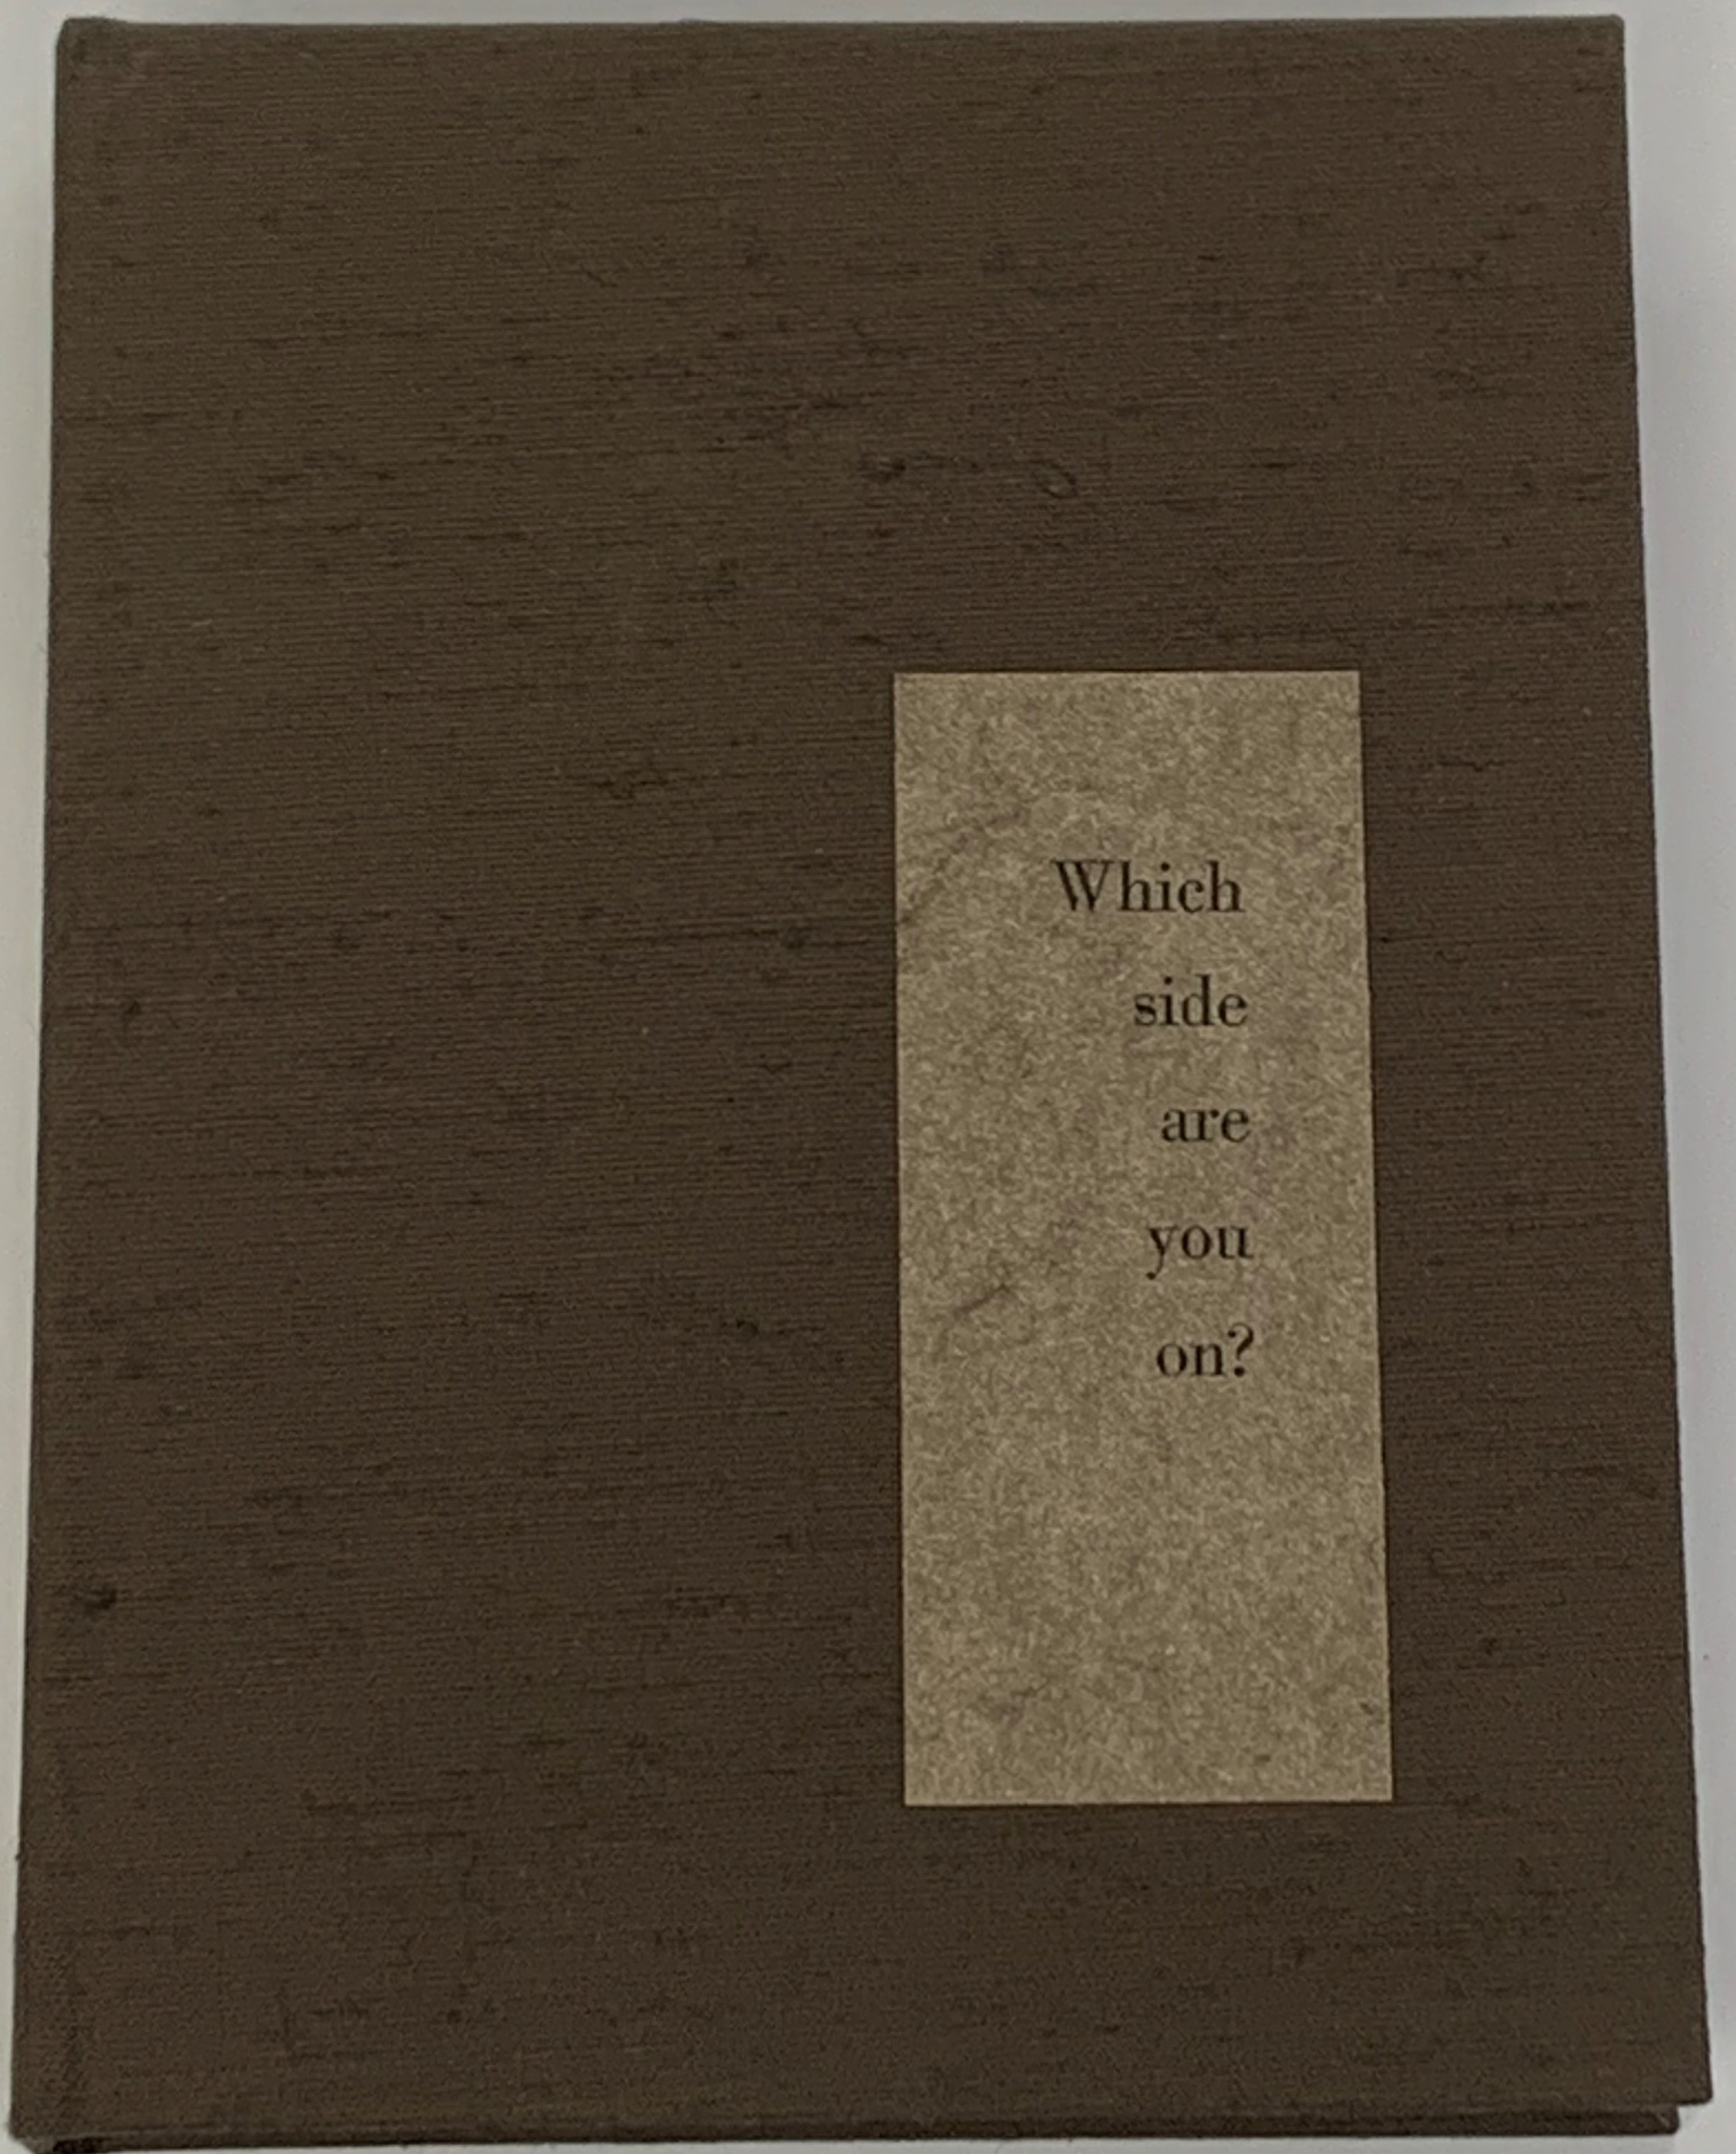 """brown fabric covered clamshell storage box with a tan label in the lower right hand corner with """"Which side are you on?"""" printed on the label"""